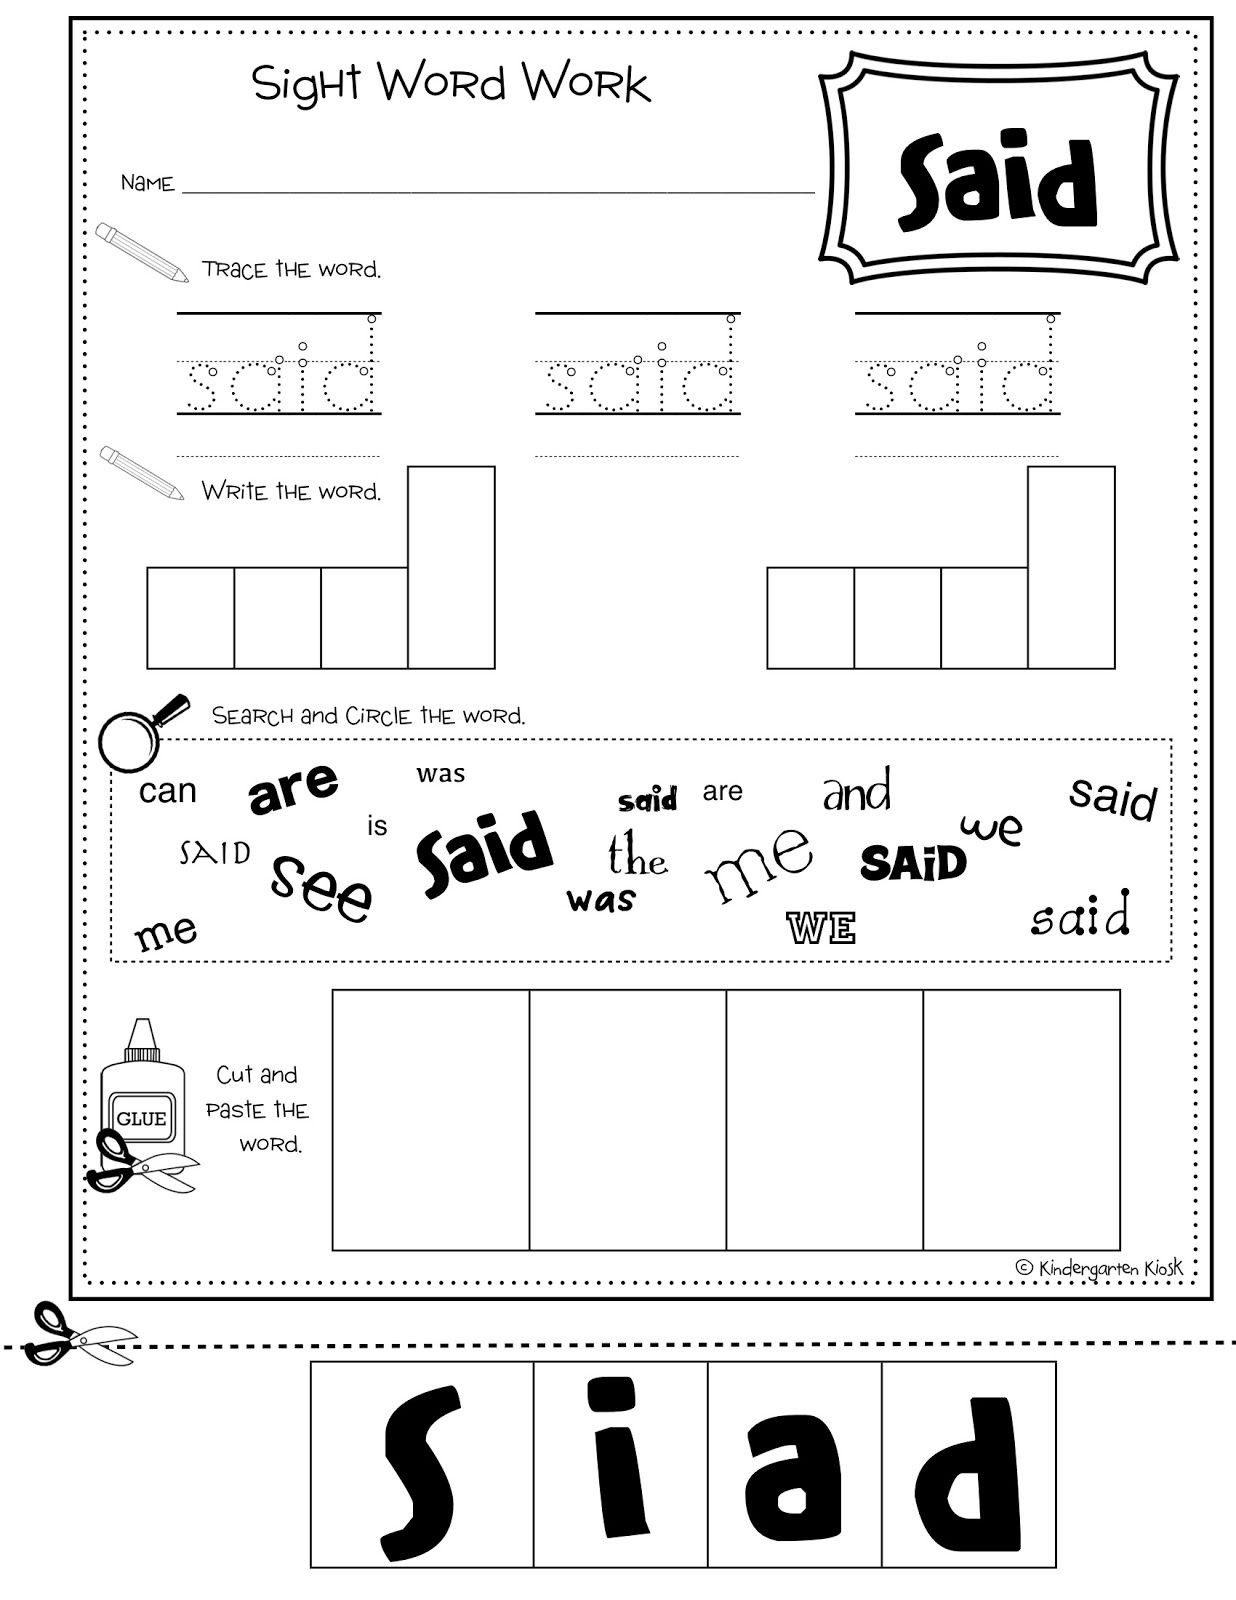 math worksheet : sight words words and sight word worksheets on pinterest : Sight Words Worksheets Kindergarten